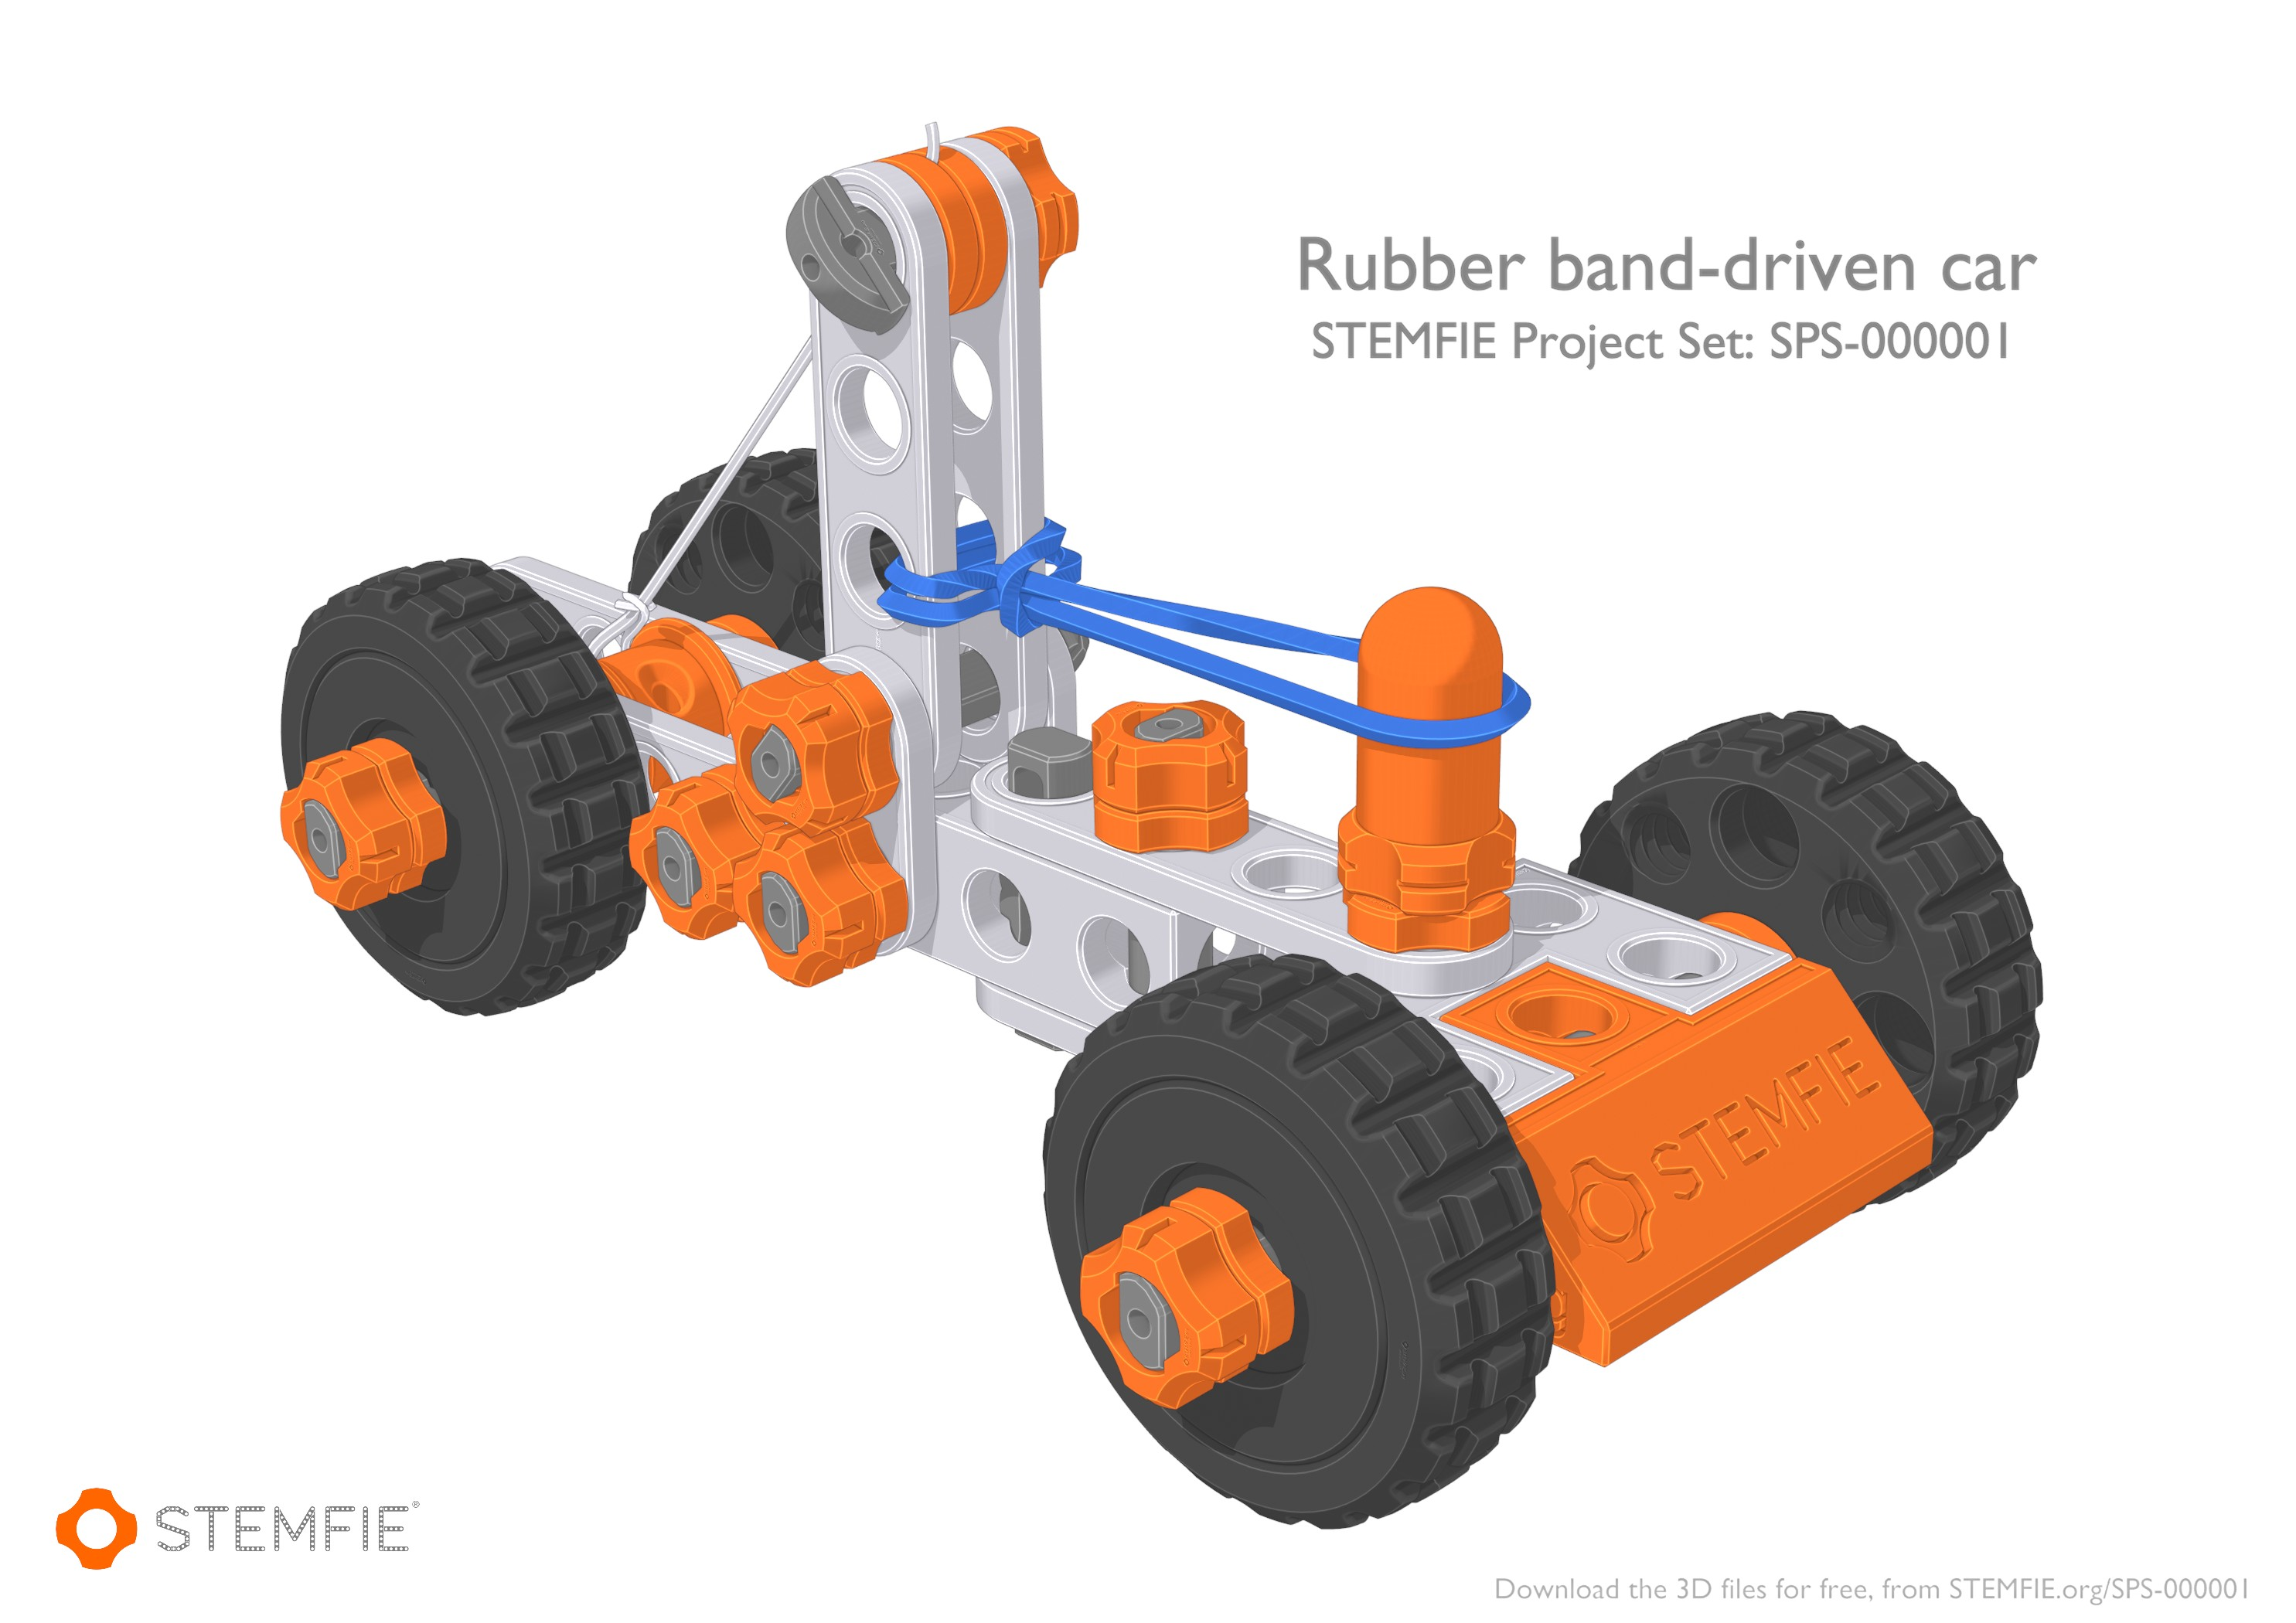 STEMFIE rubber-band-driven car preview image 1